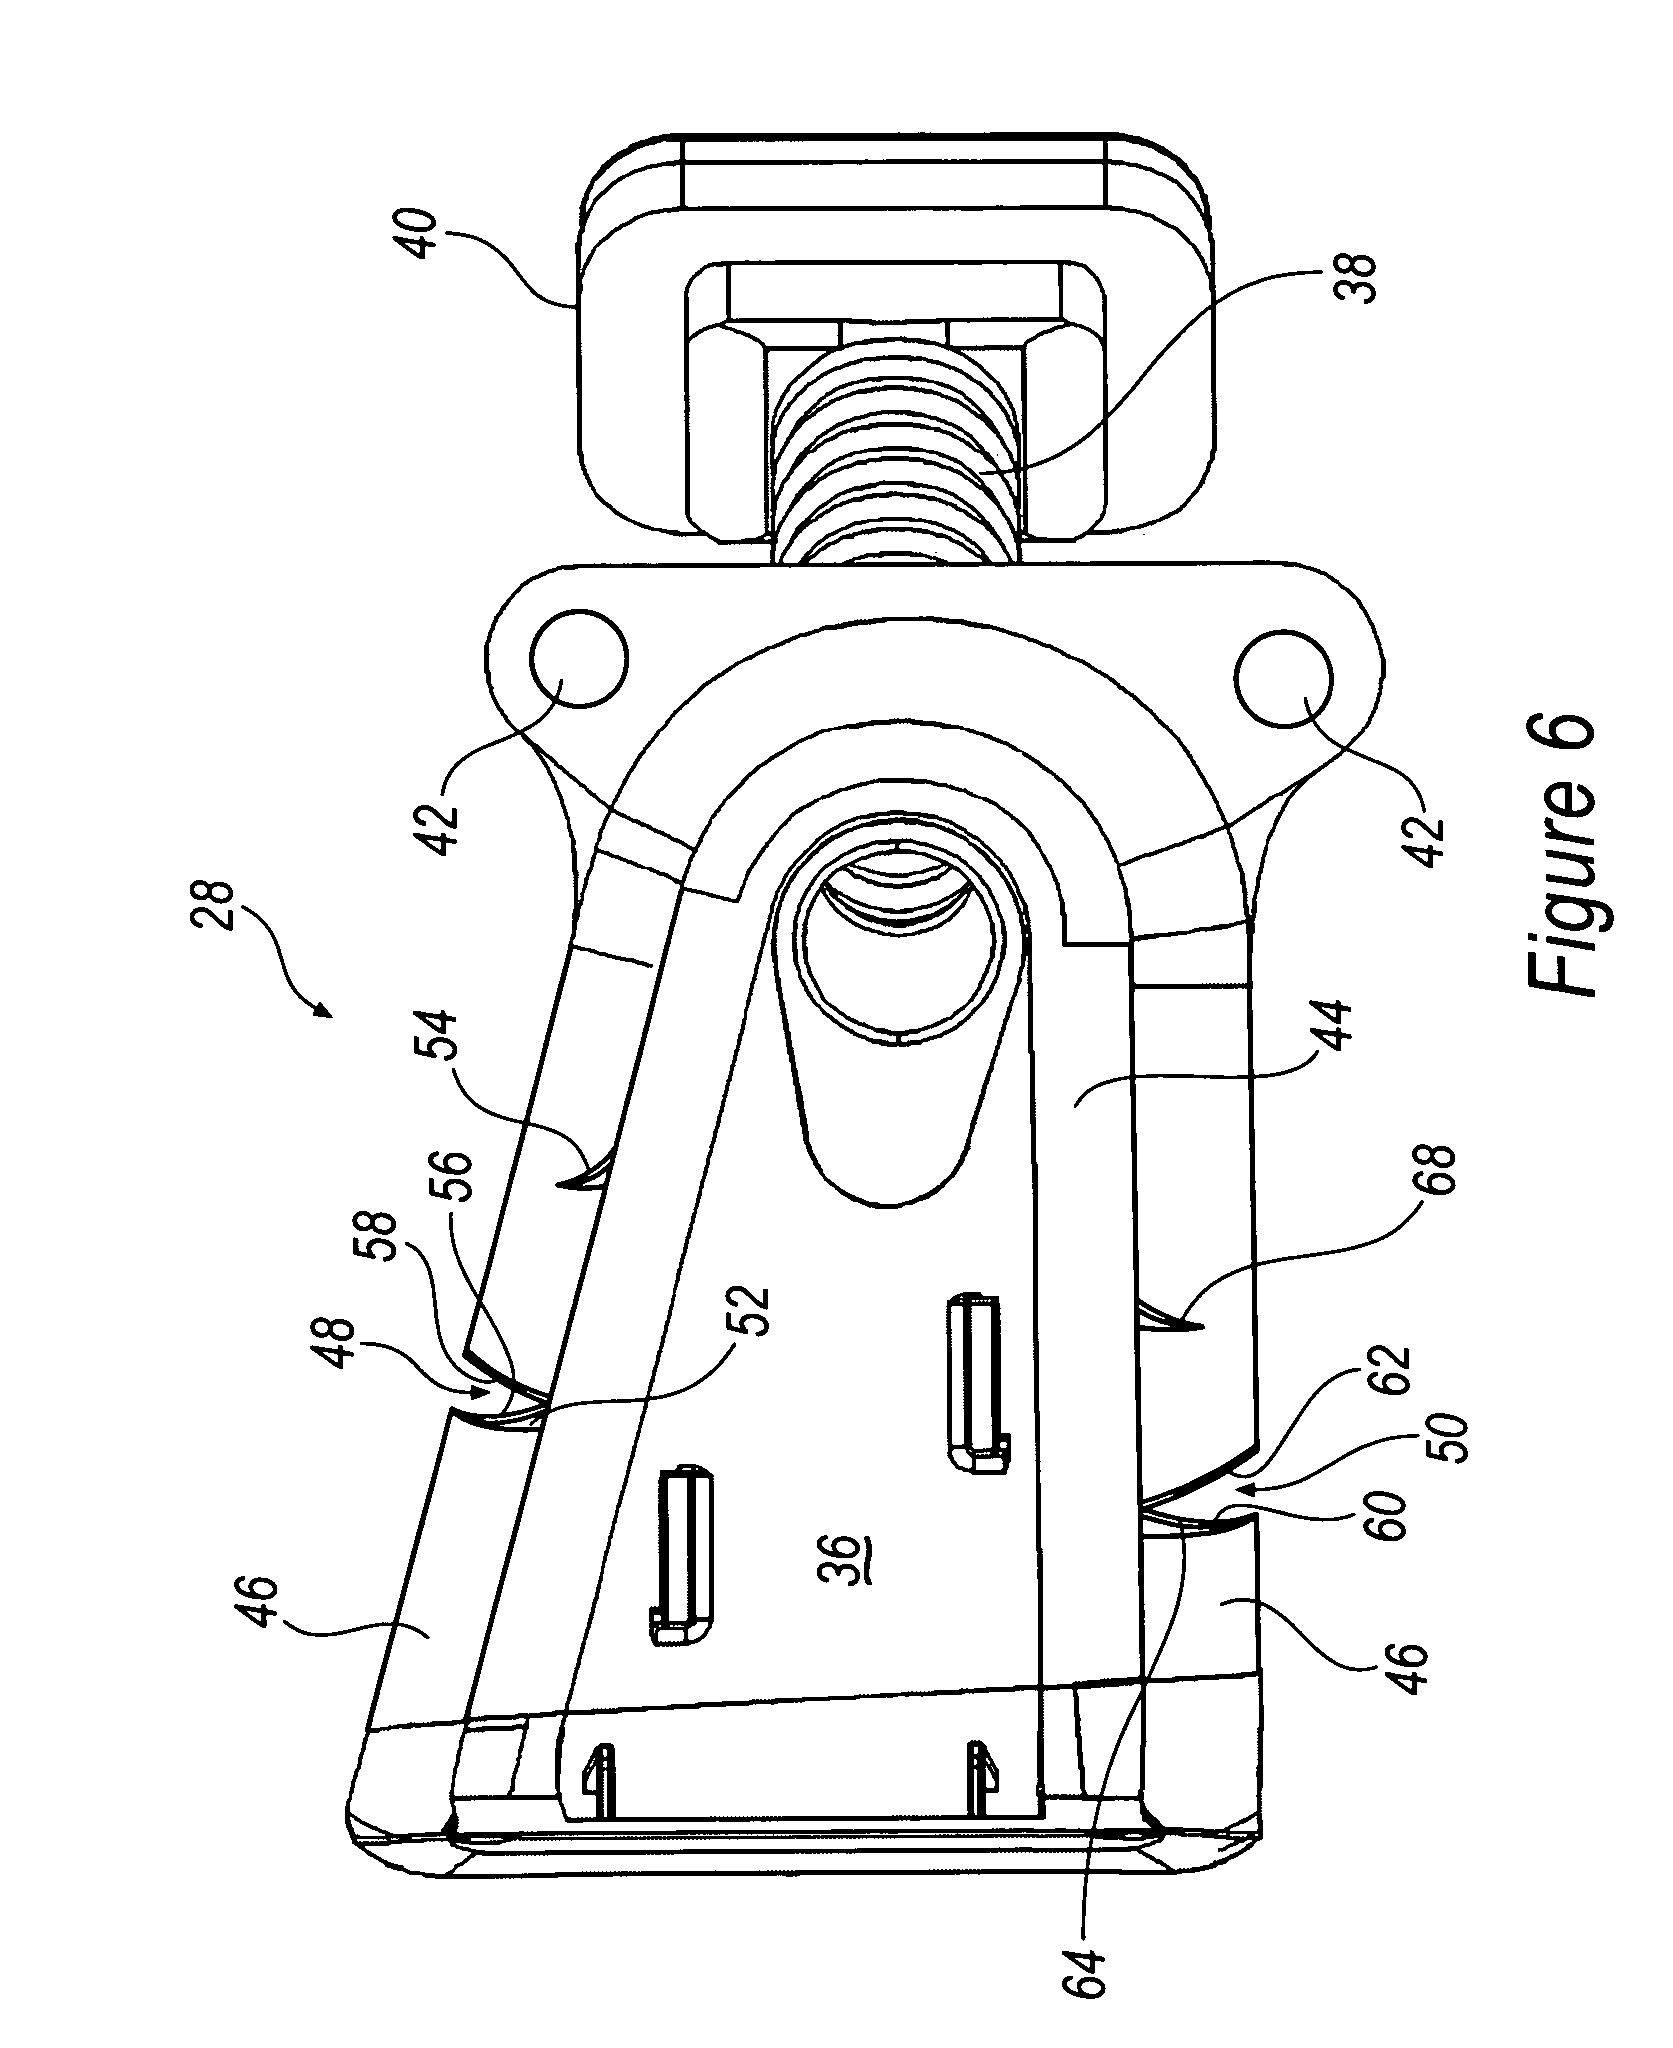 Patente us7615713 mounting structure for wiring harness